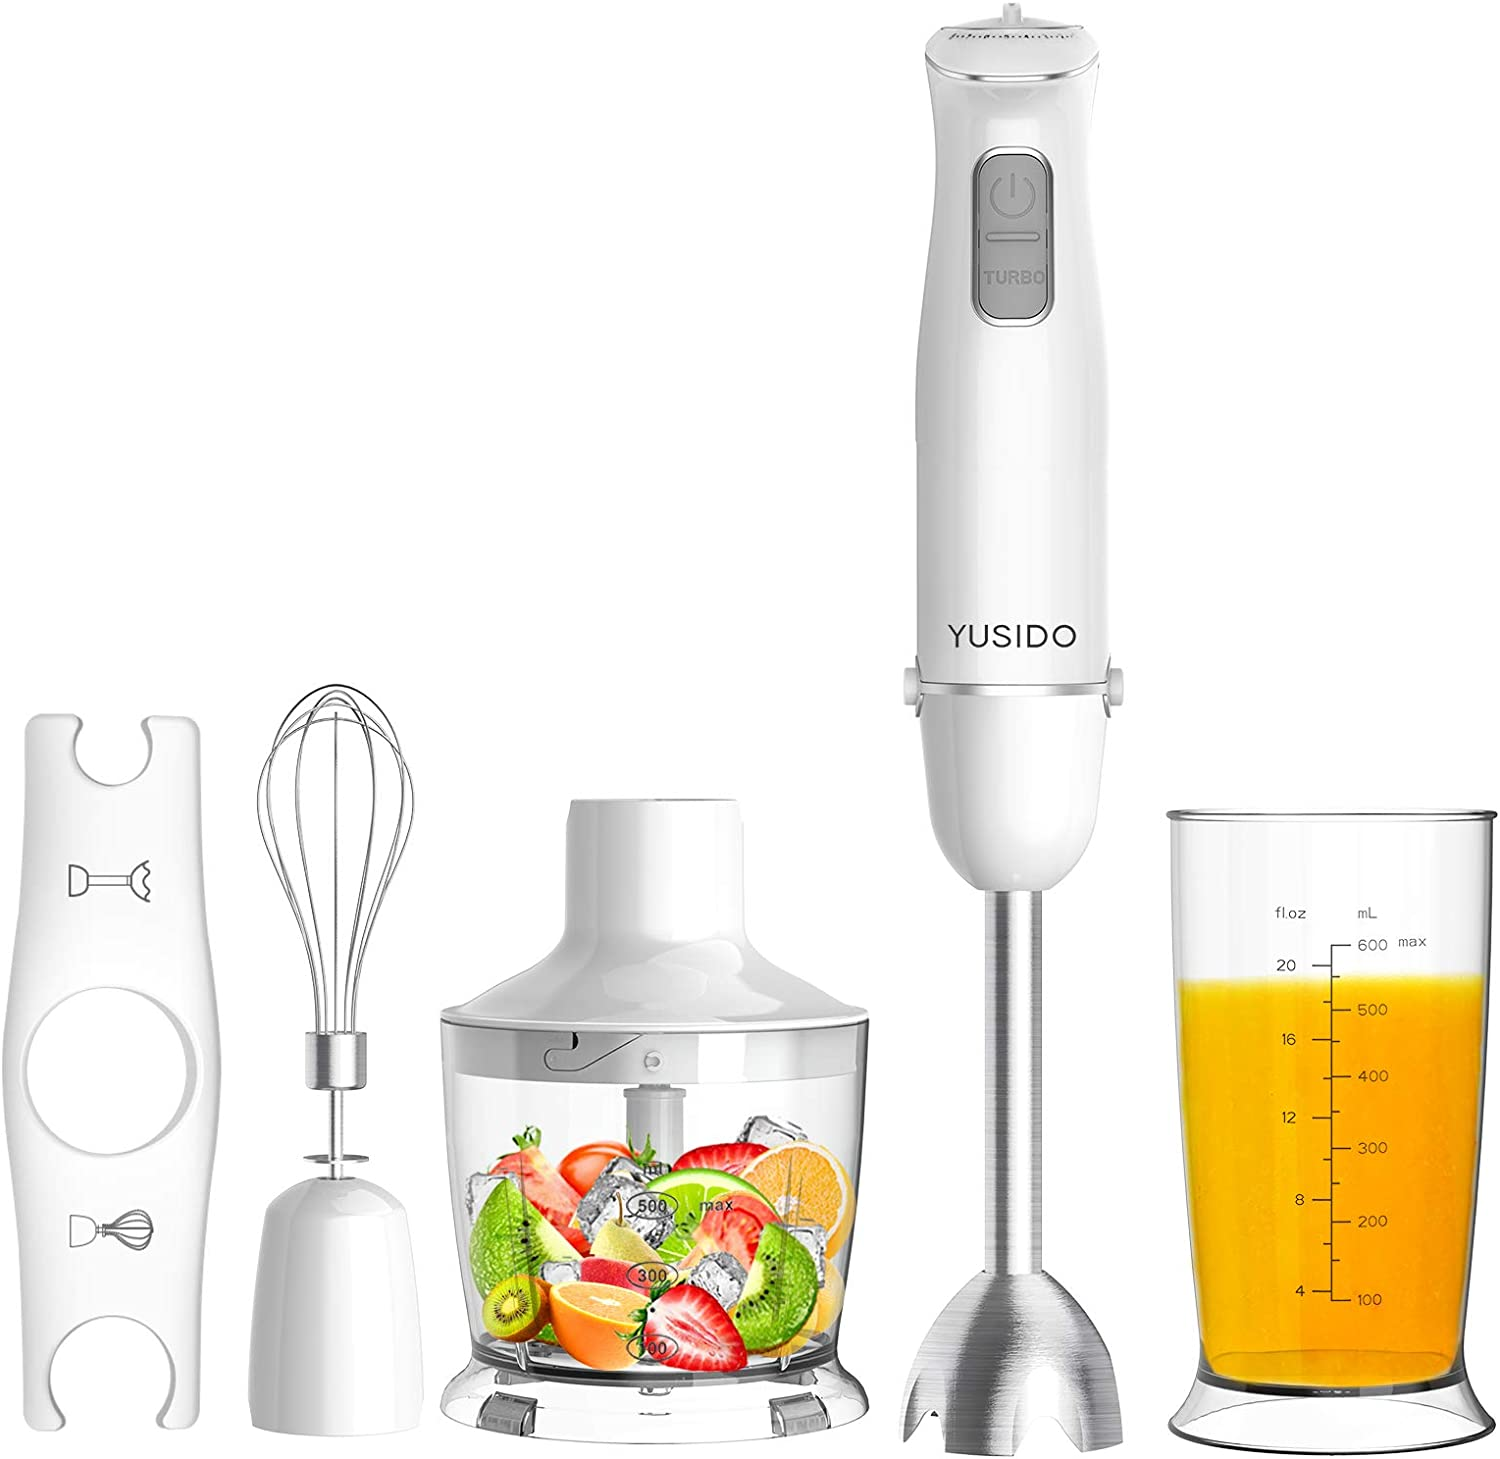 Yusido Immersion Multi-Purpose Hand Blender 800 Watt 8-Speed with Titanium-Plated Blades and Food Grinder Bowl (White)